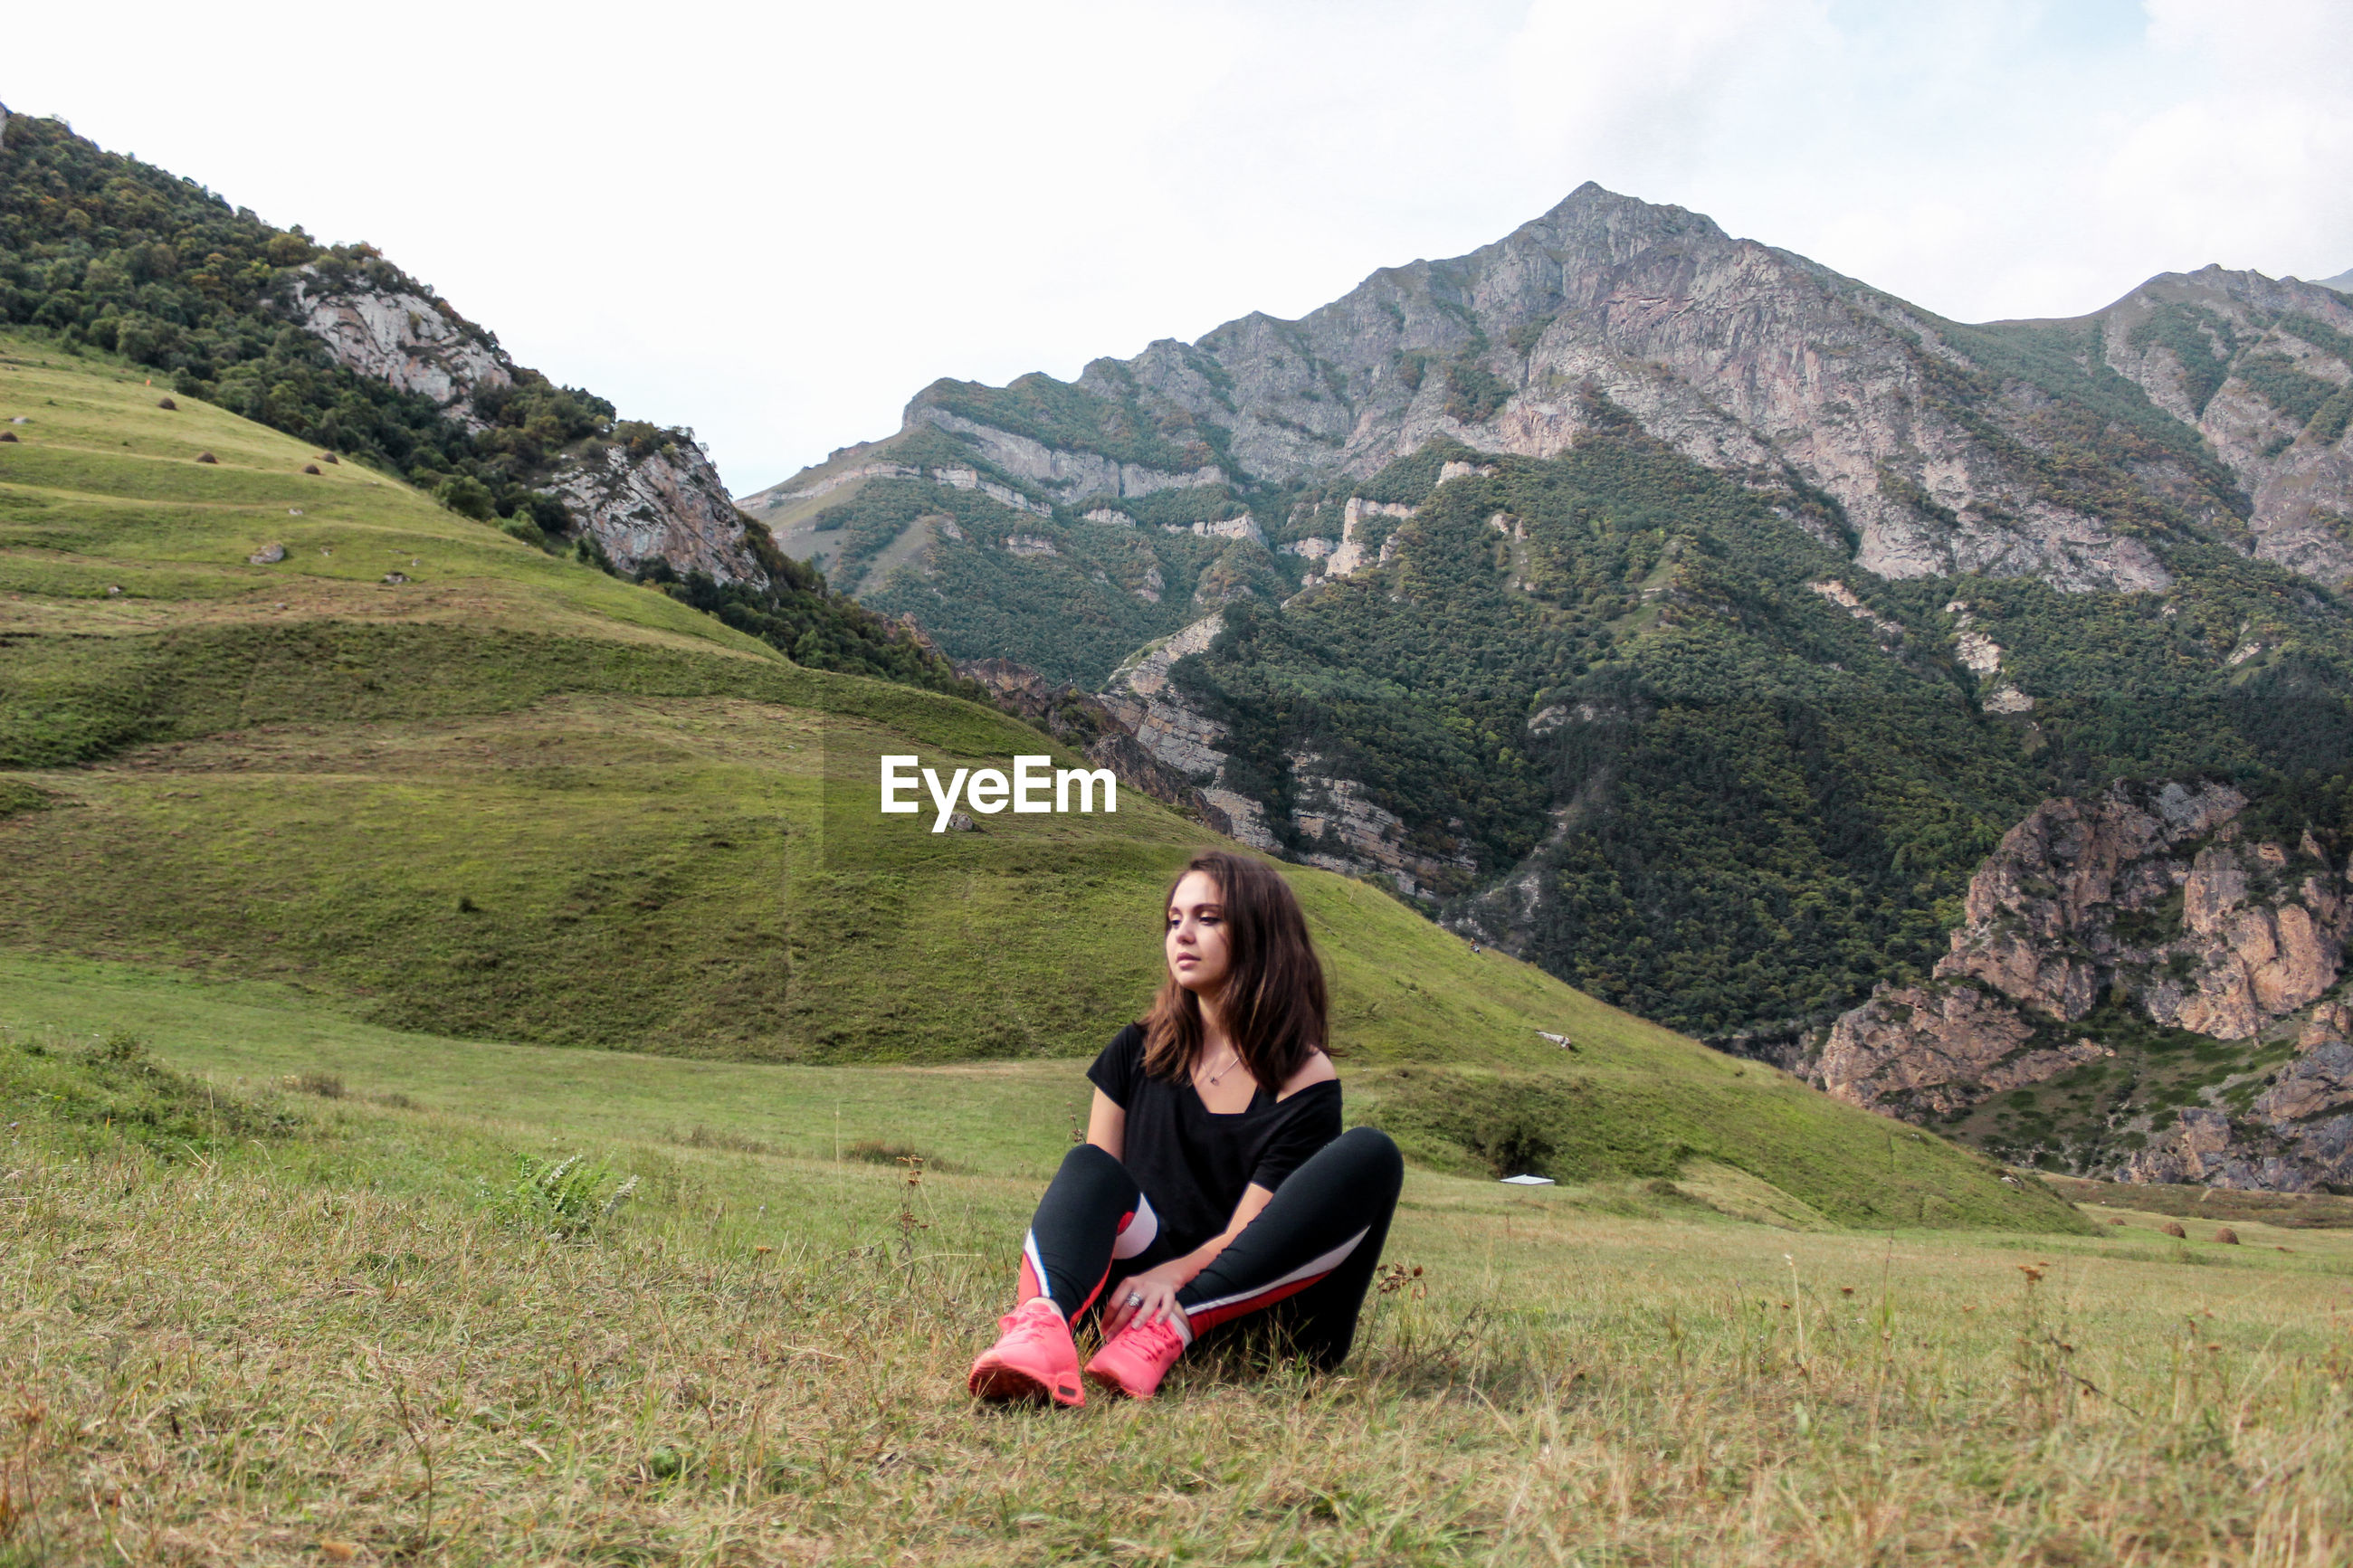 Young woman sitting on field against mountains